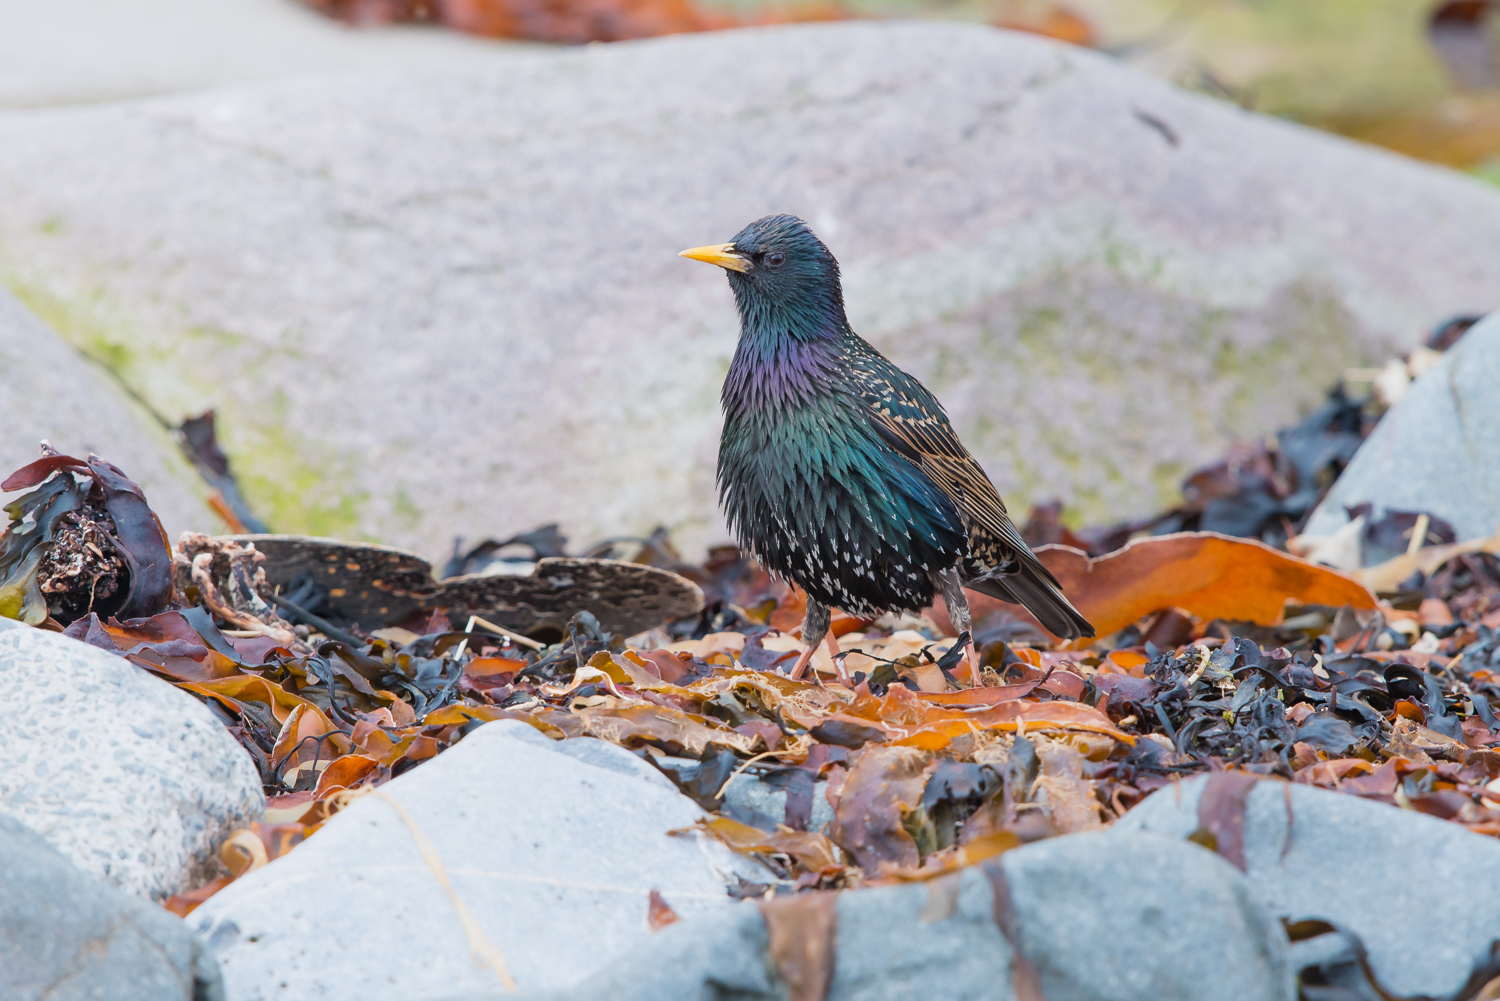 European Starling, British Birds, wildlife